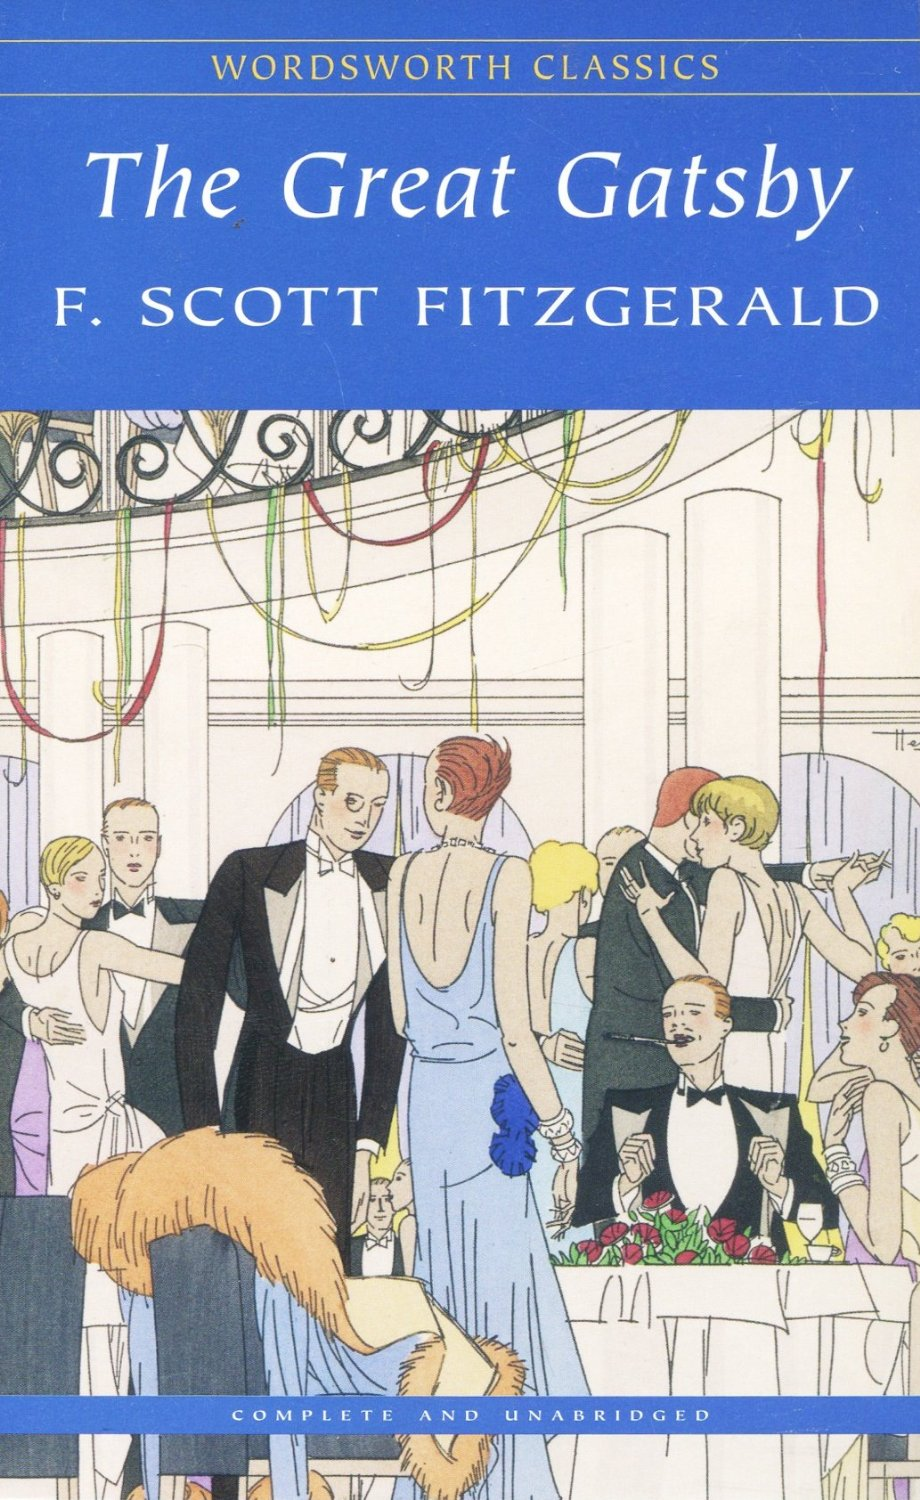 an extensive description of jay gatsby in the great gatsby by f scott fitzgerald The great gatsby by f scott fitzgerald nick carraway is our main character he is a young man who graduated from new haven, went in to the war, came out, and moved from the west to long island sound's west egg village.